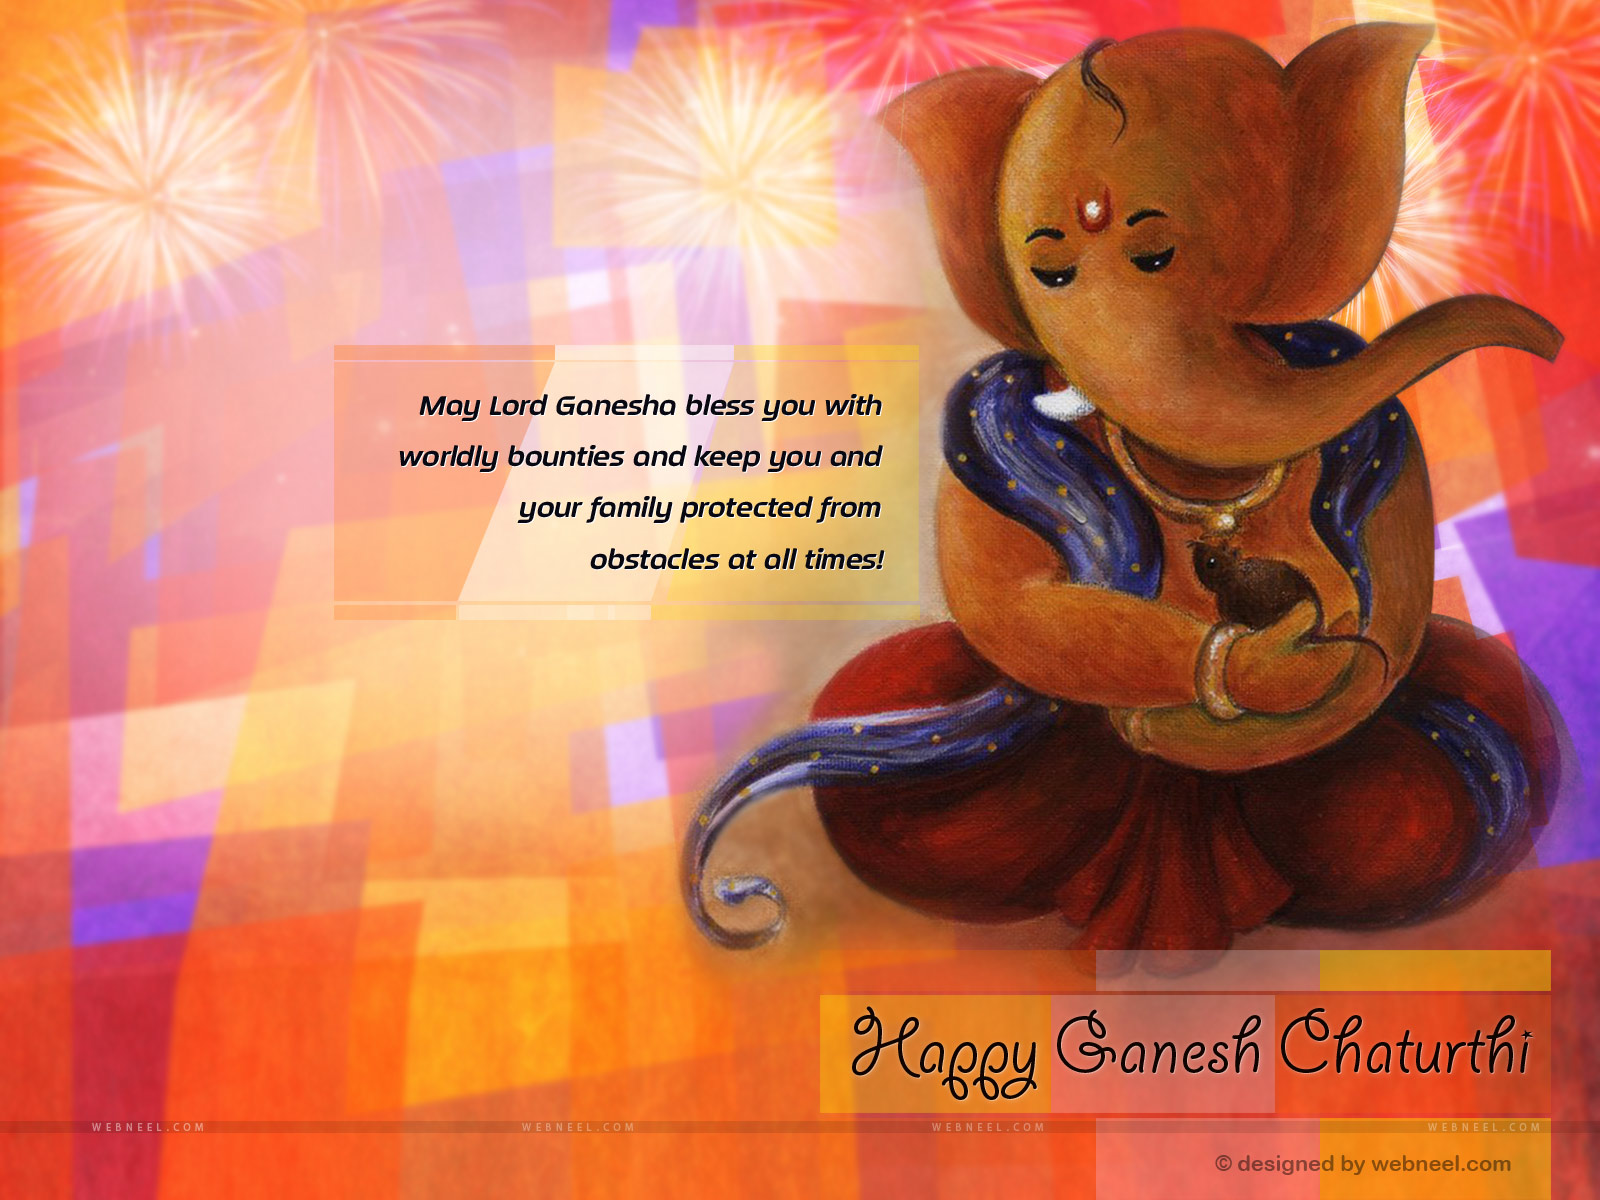 ganesh chathurthi wallpaper